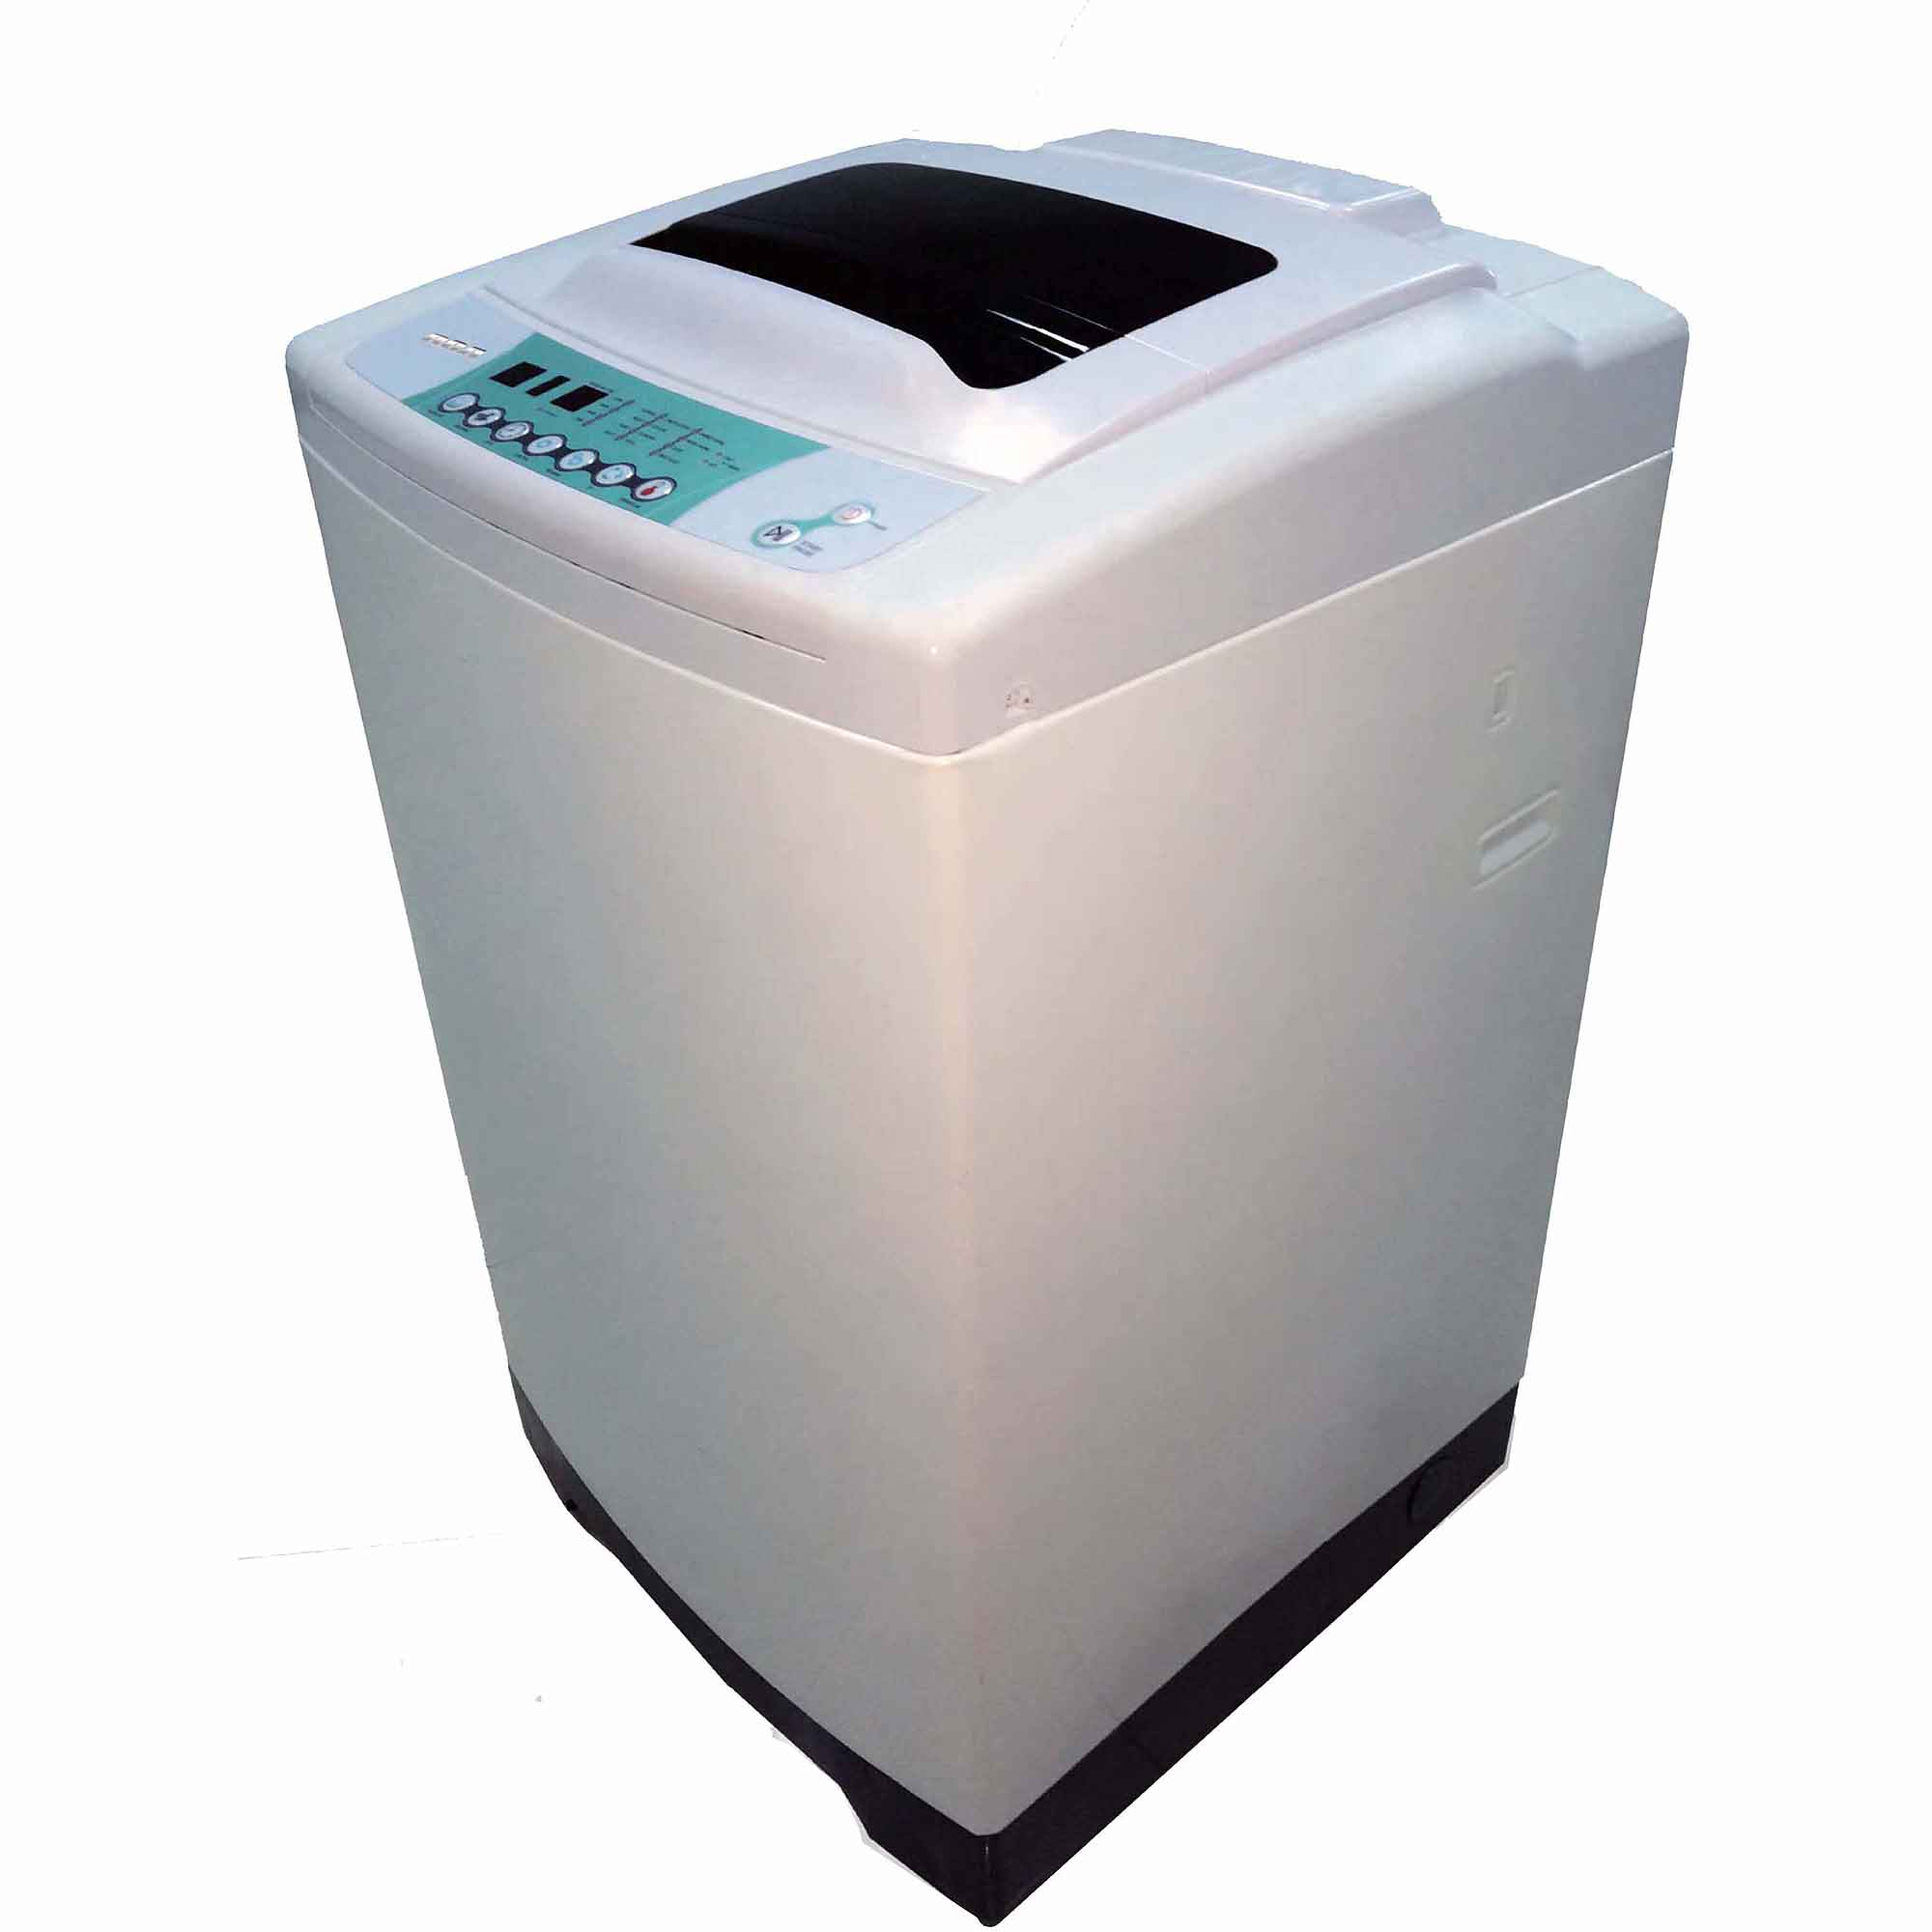 RCA 3.0 CU FT PORTABLE WASHER